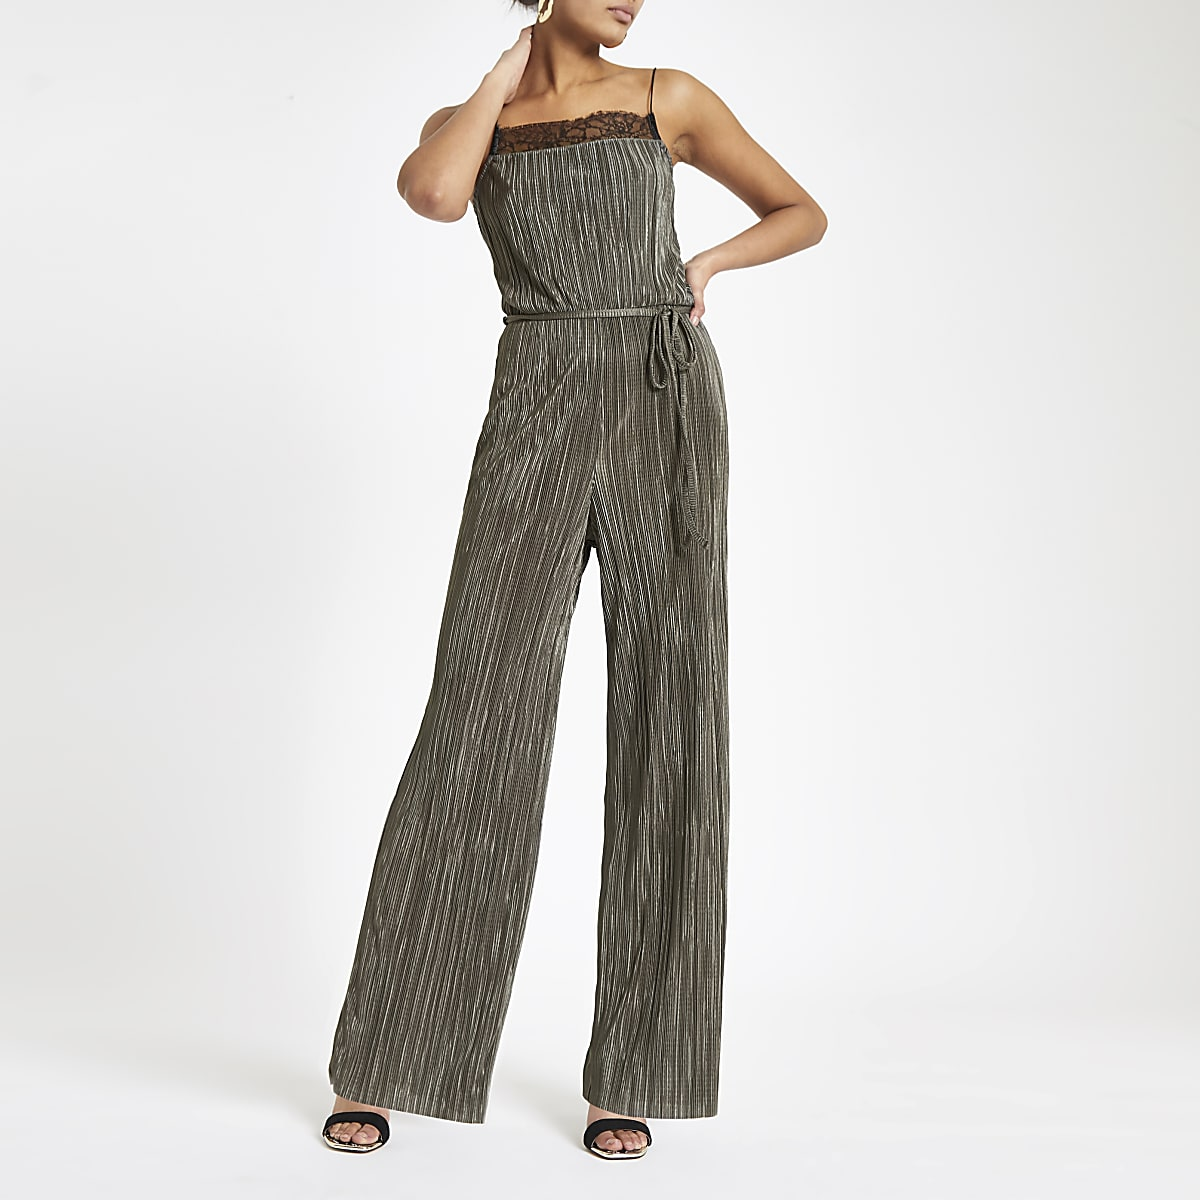 Dark green lace trim plisse jumpsuit